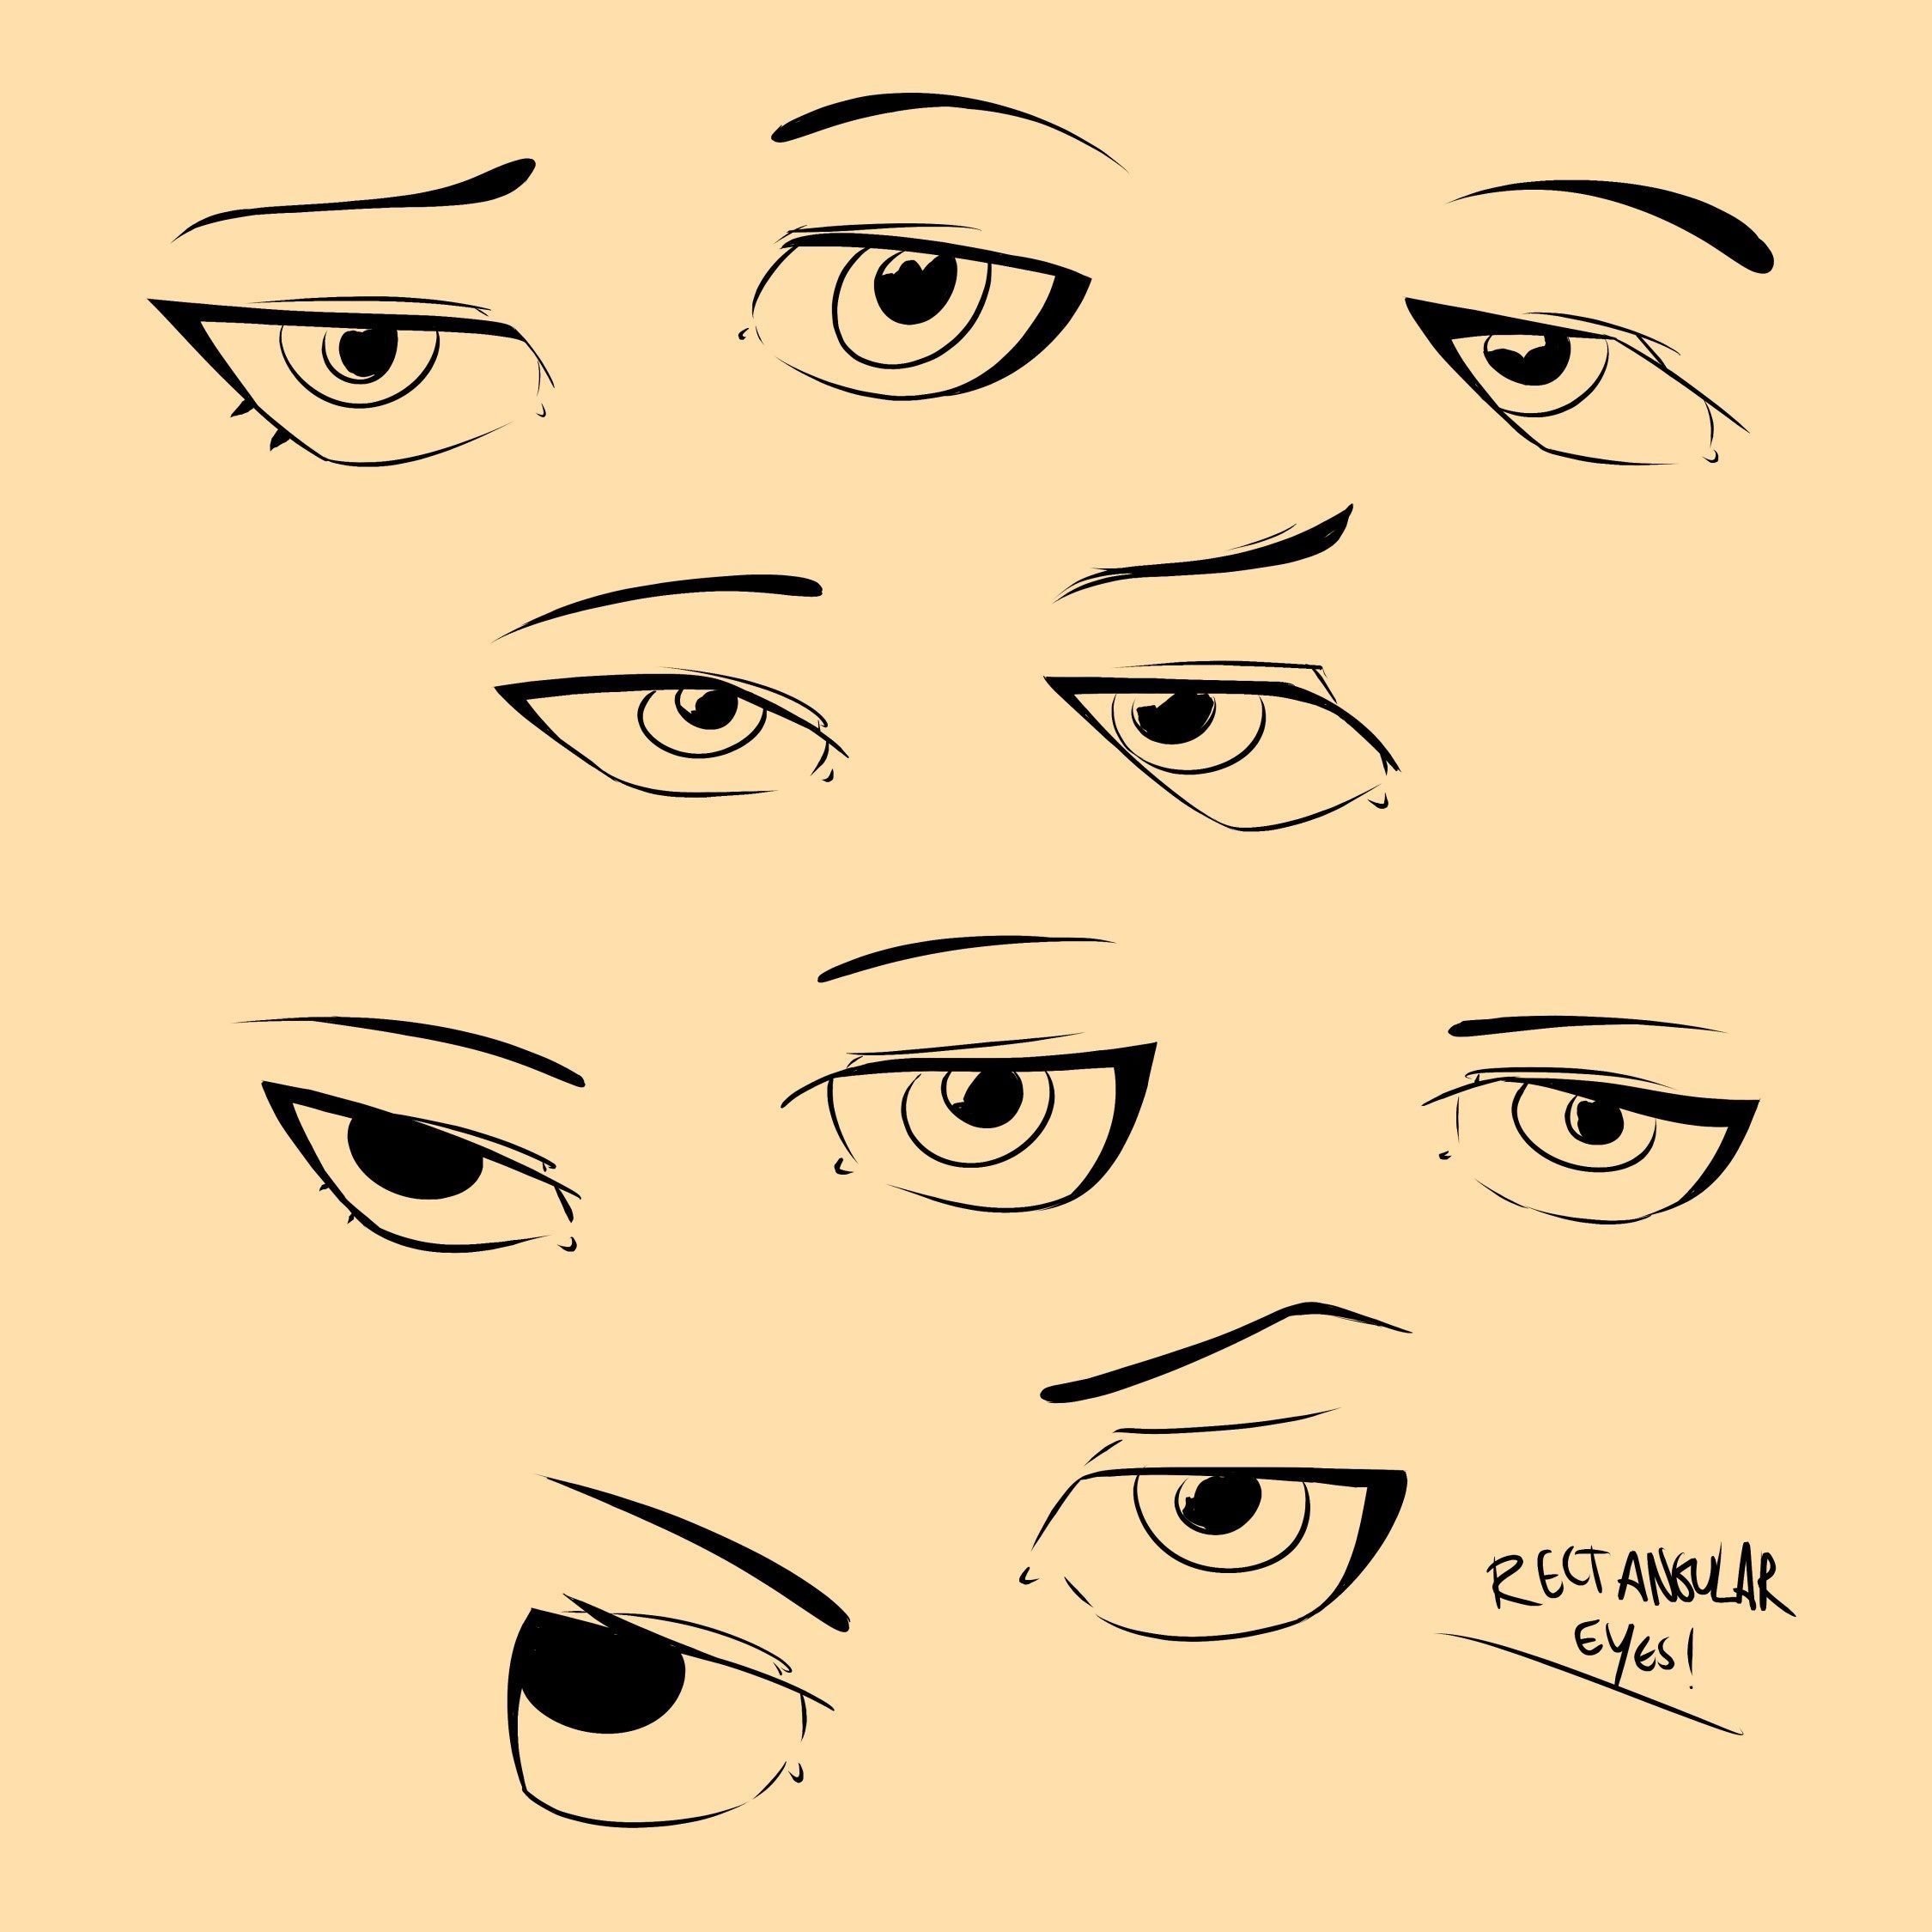 Sexy eyes drawing anime